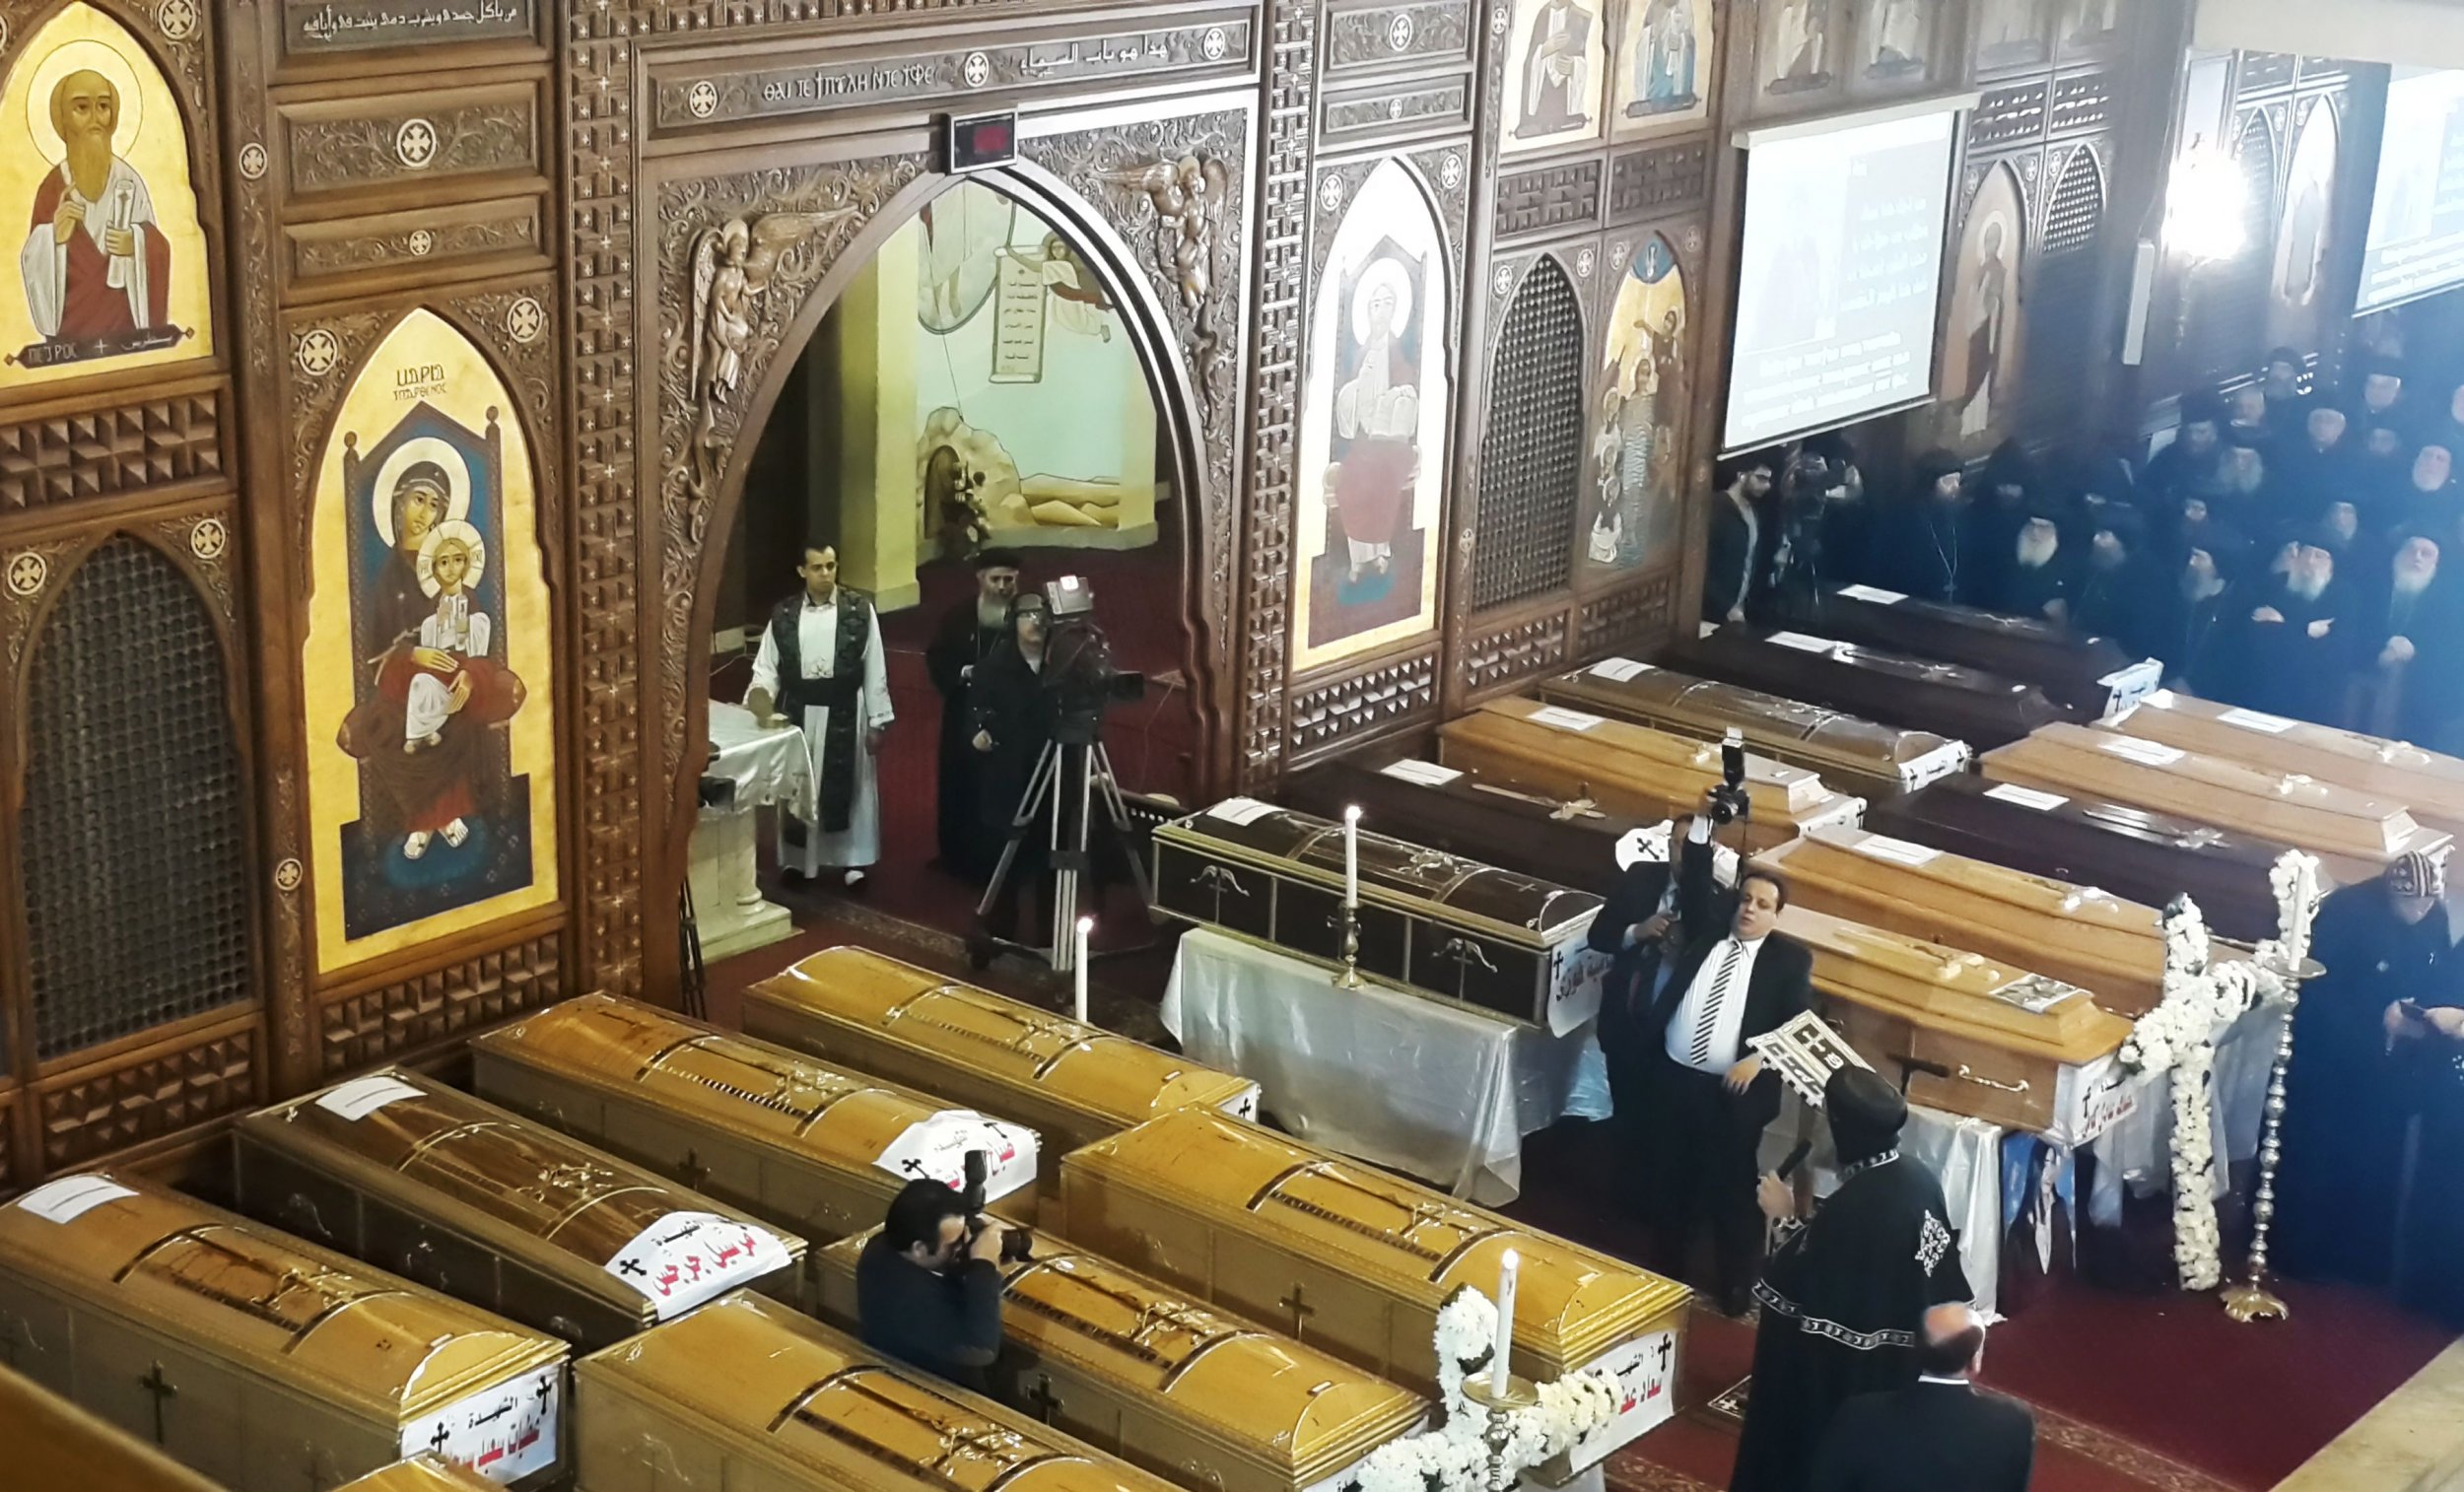 Cairo church bombing funeral